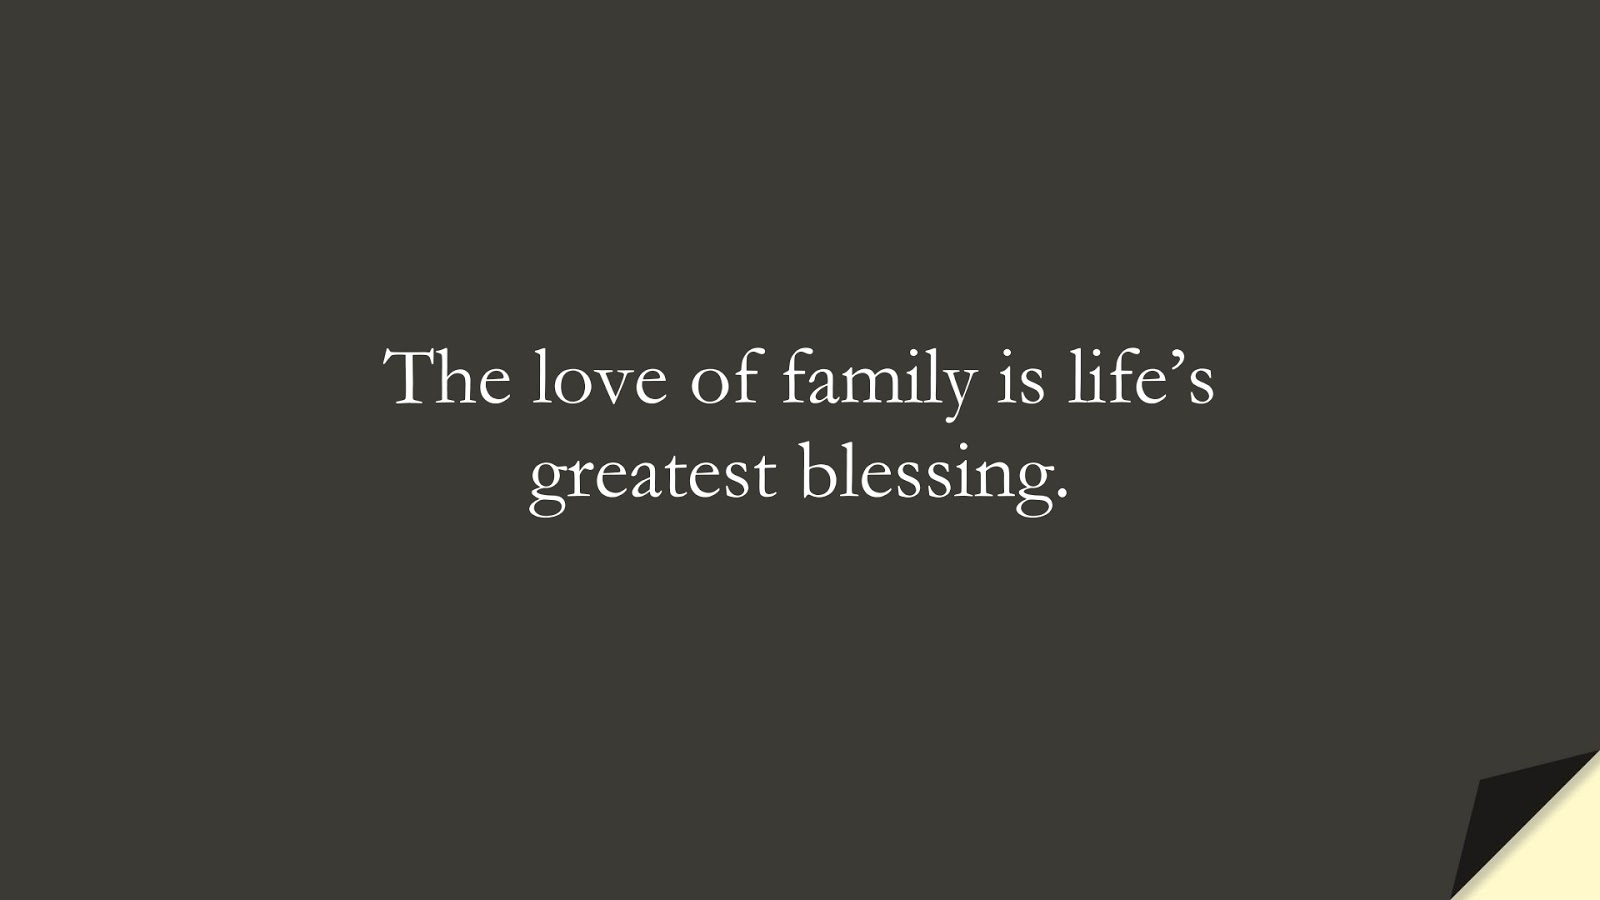 The love of family is life's greatest blessing.FALSE